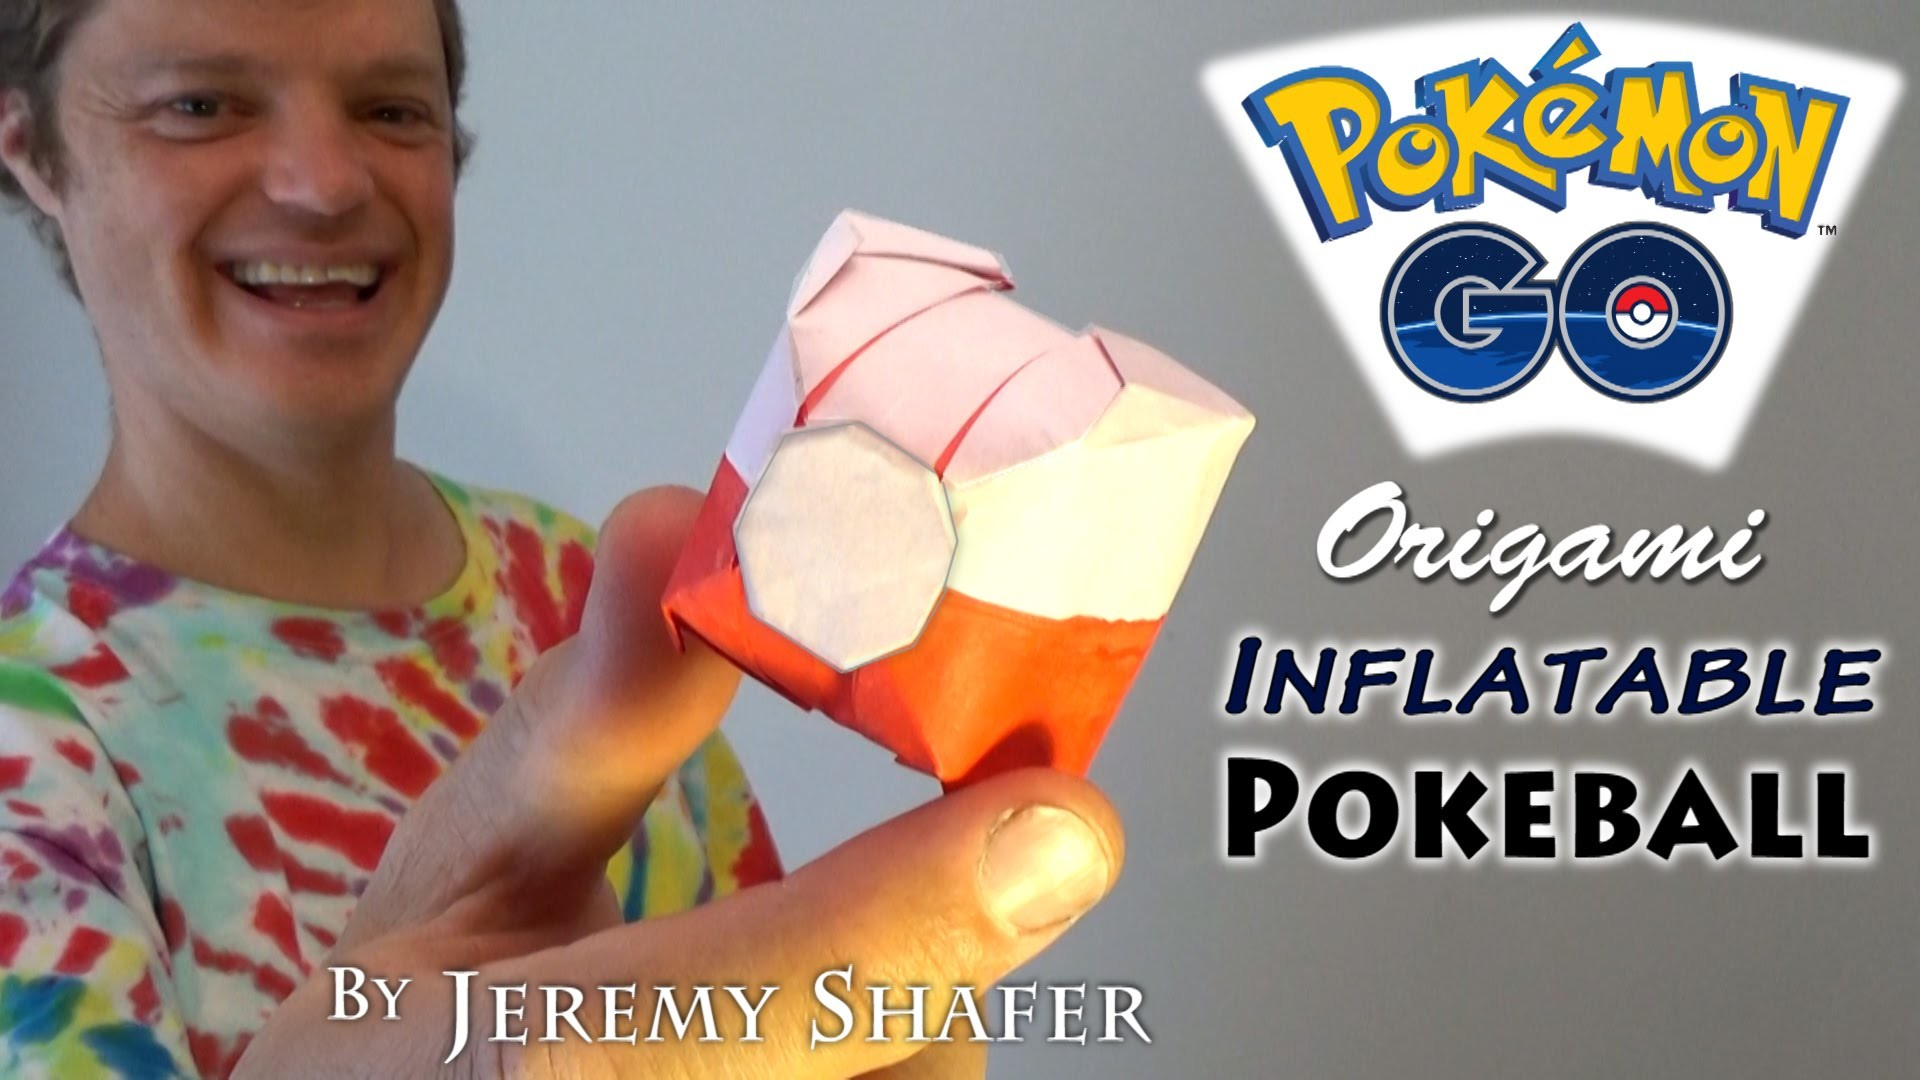 Origami Inflatable Pokeball